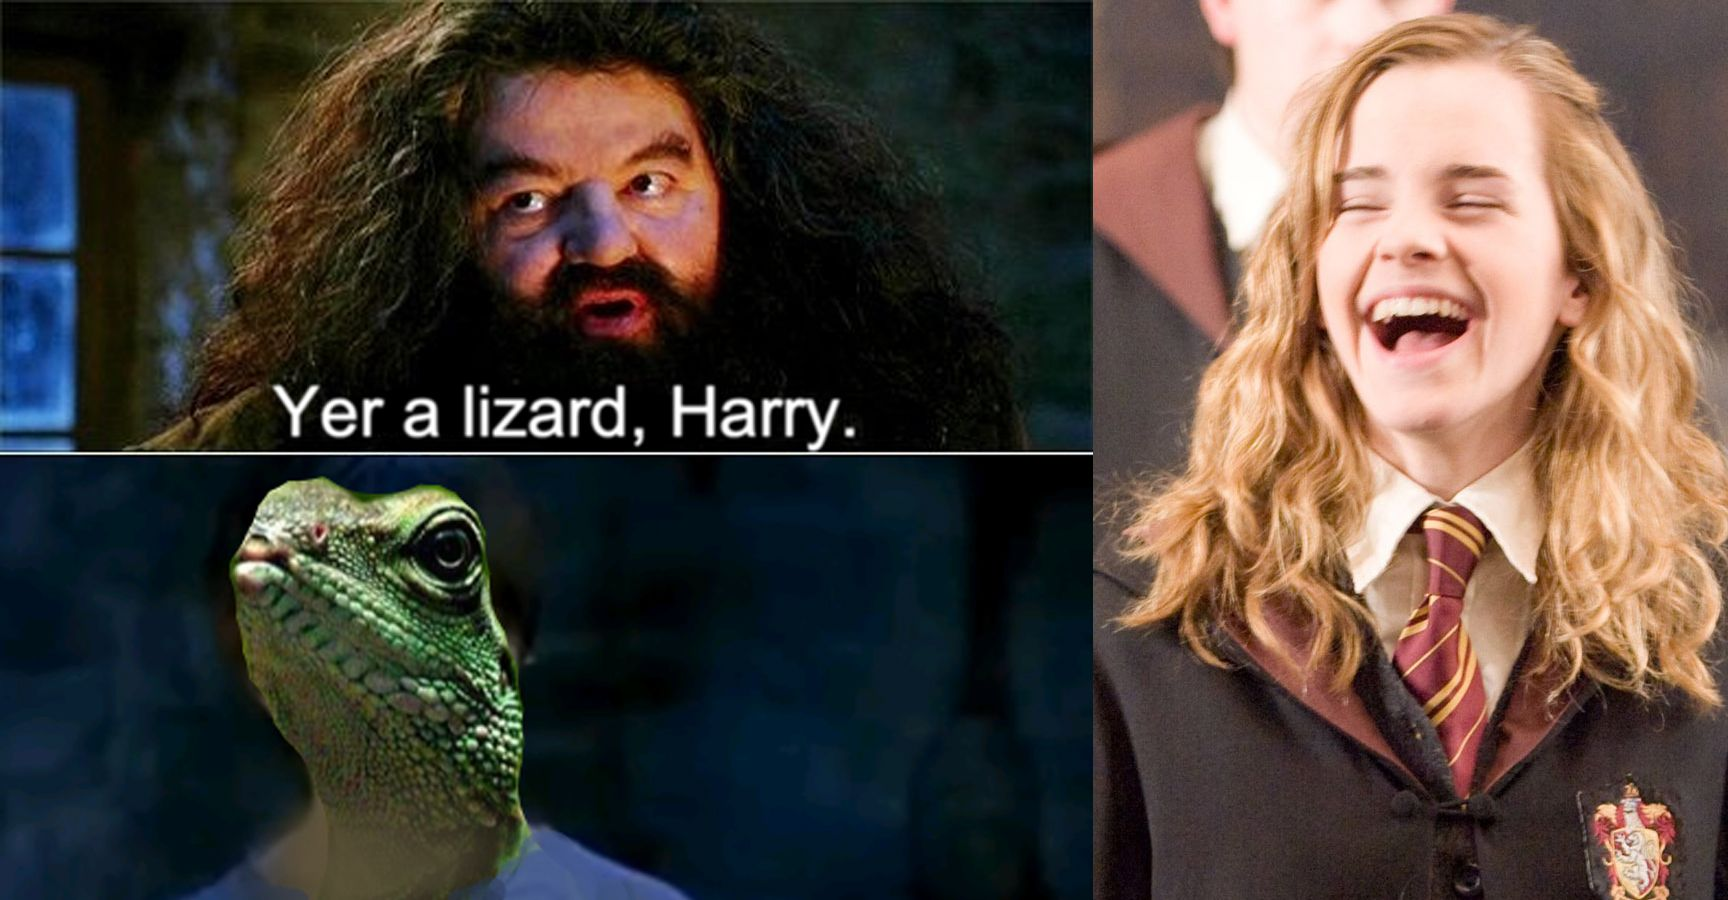 15 hilarious you re a wizard harry memes that will make you rofl